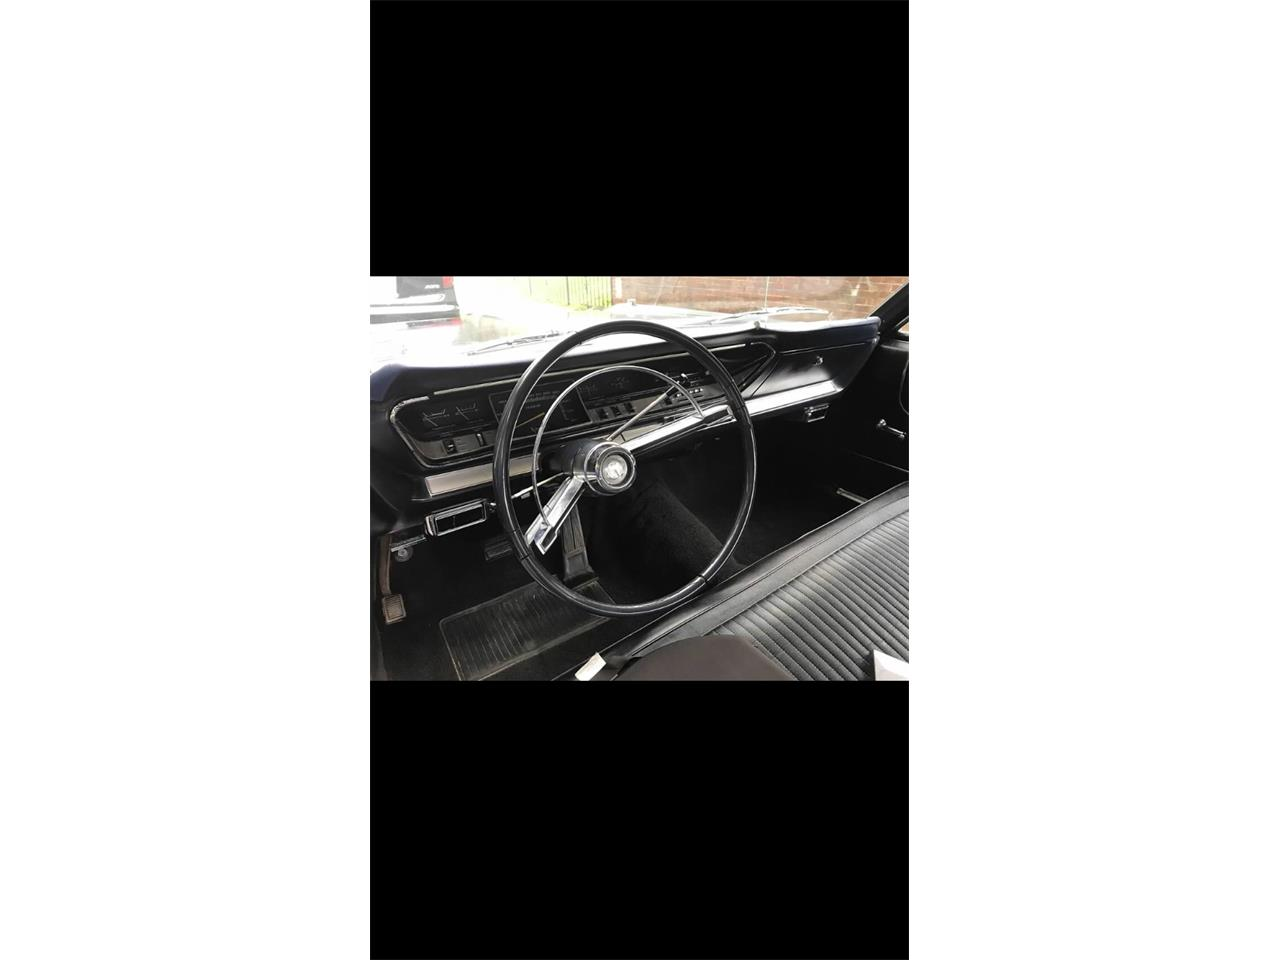 1967 Plymouth Fury III (CC-1204941) for sale in Queens, New York